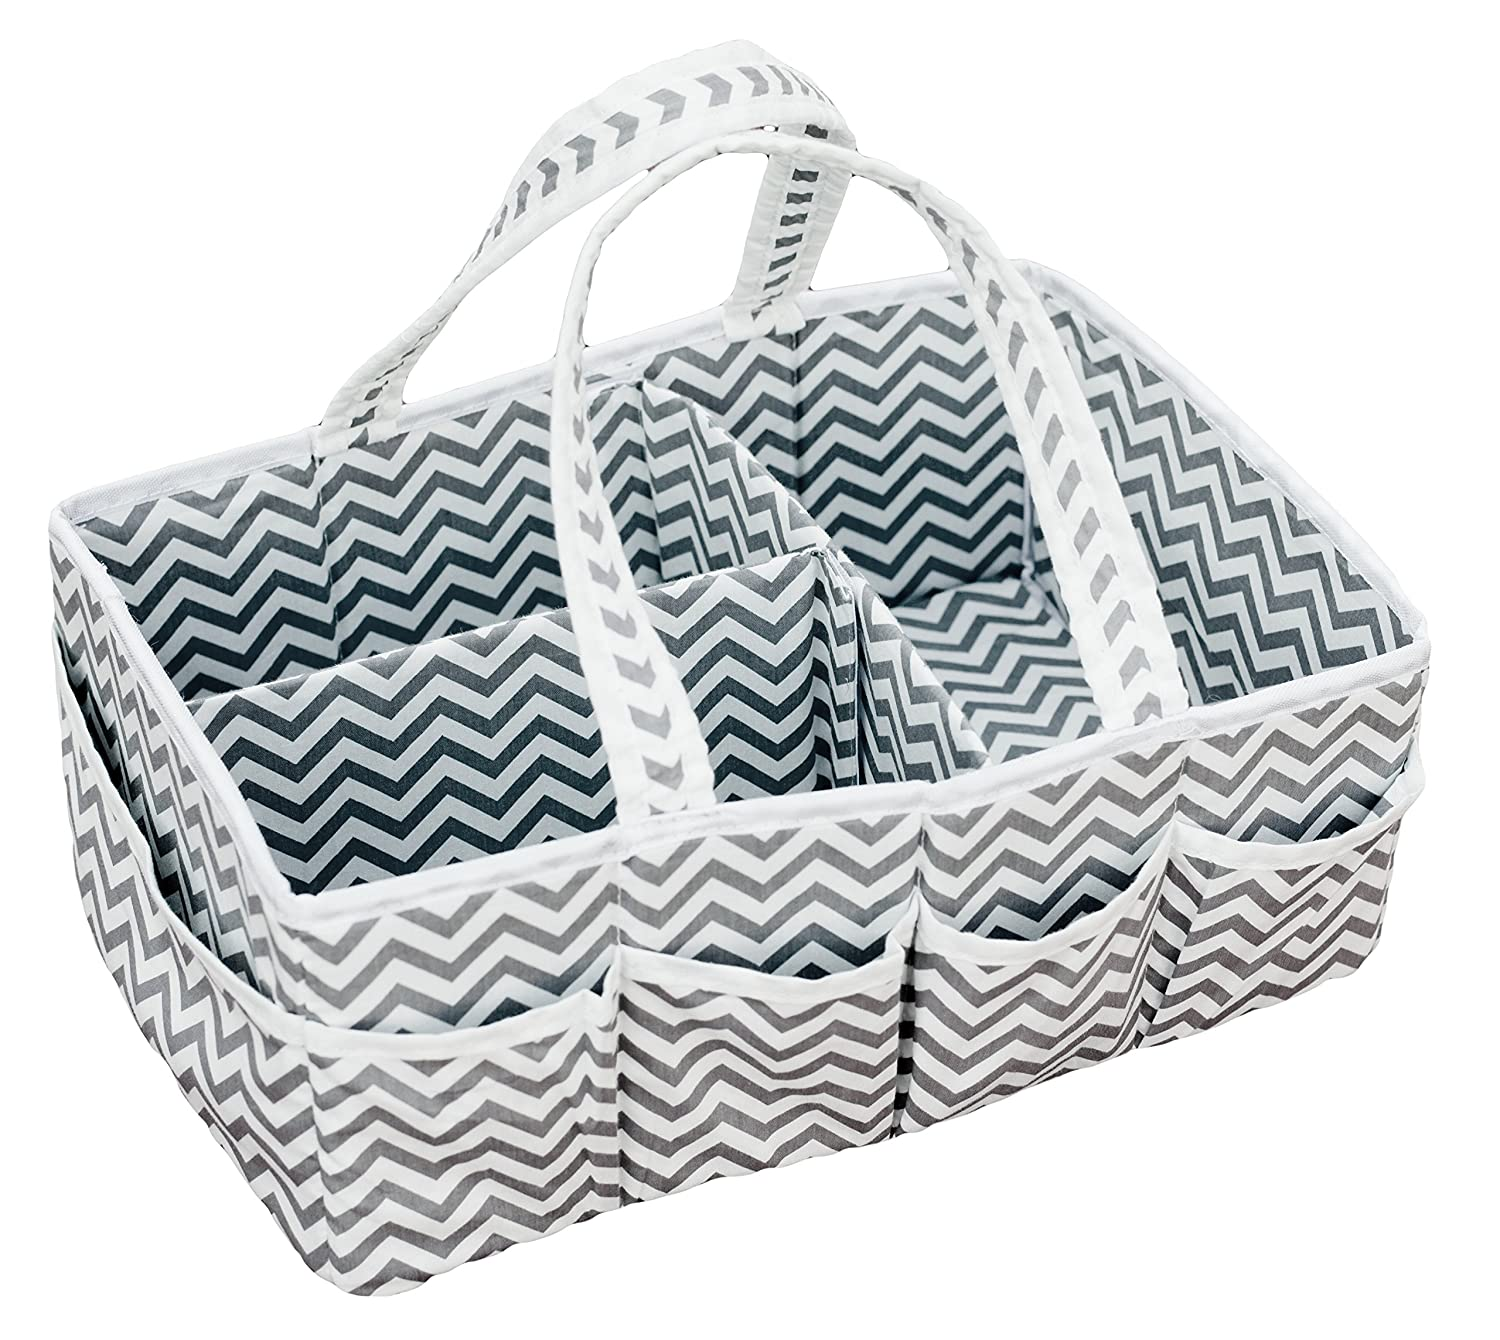 SARVOND Baby Diaper Caddy Organizer w/10 Side Pockets & Strong Handles. Trendy Chevron Tote for Boys & Girls, Shower Gift Basket, Easy for Travel & Nursery Changing Tables, Portable Organizing Caddie Sarvond for Family 43893420